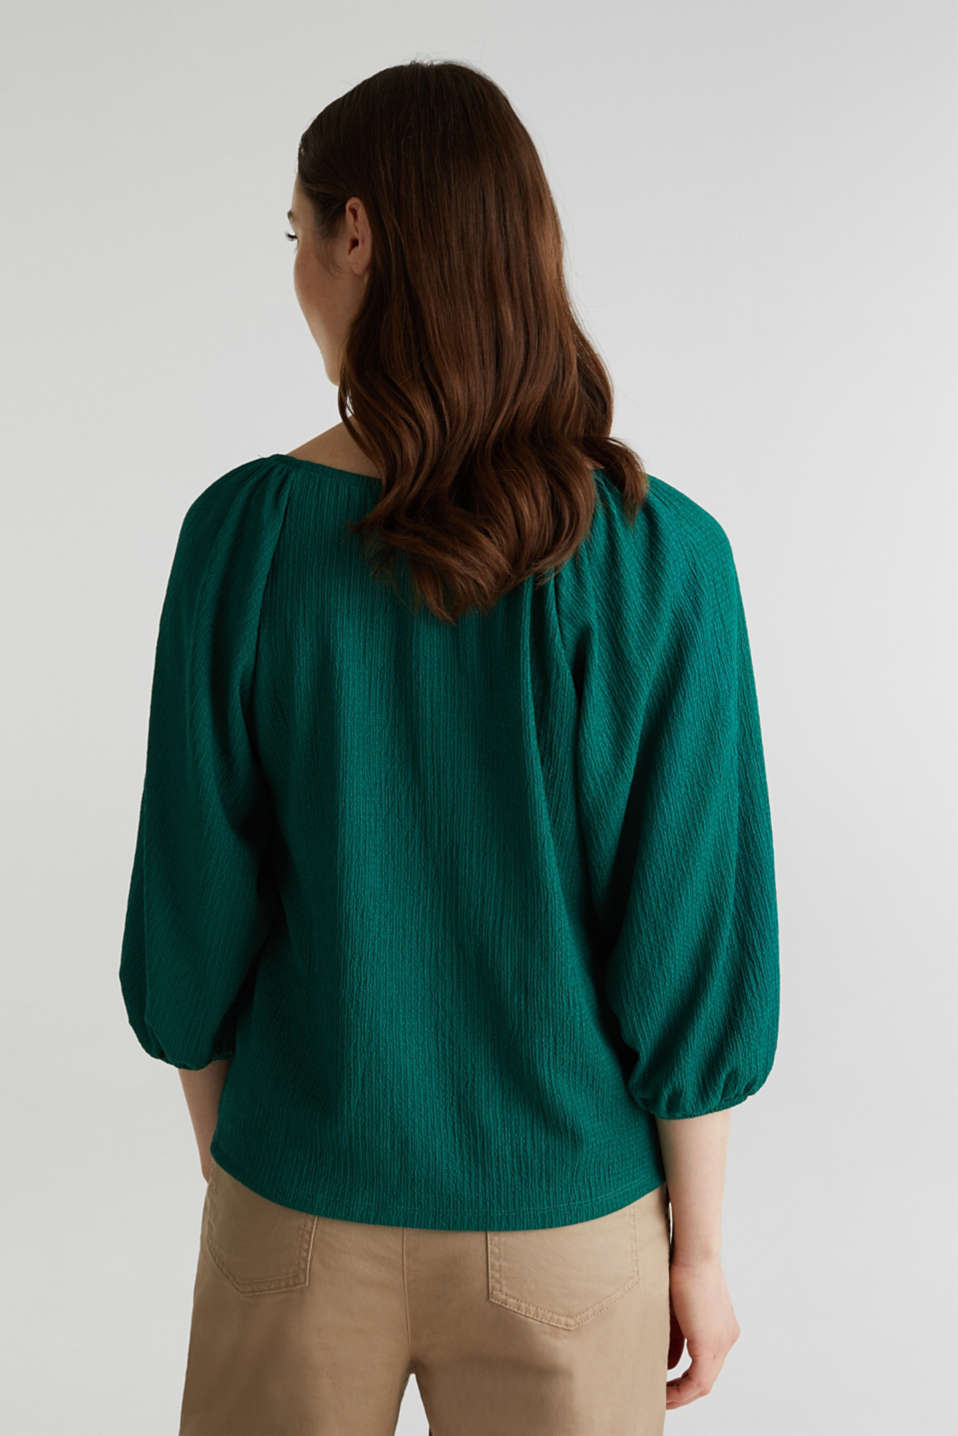 Textured blouse top, recycled, TEAL GREEN, detail image number 3